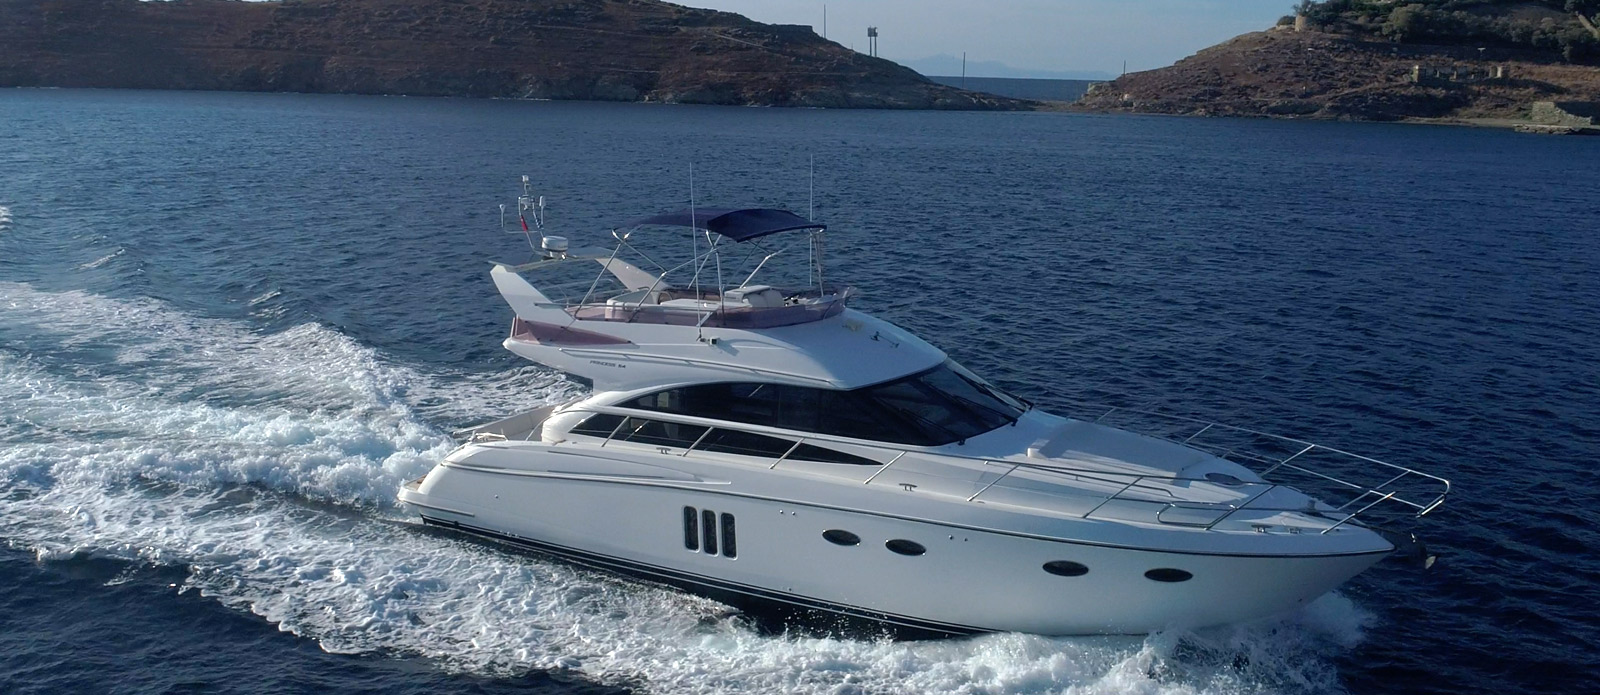 Princess-P54-Fly-Bridge-Motor-Yacht-Lavimar-Running-Shot-Side-Profile